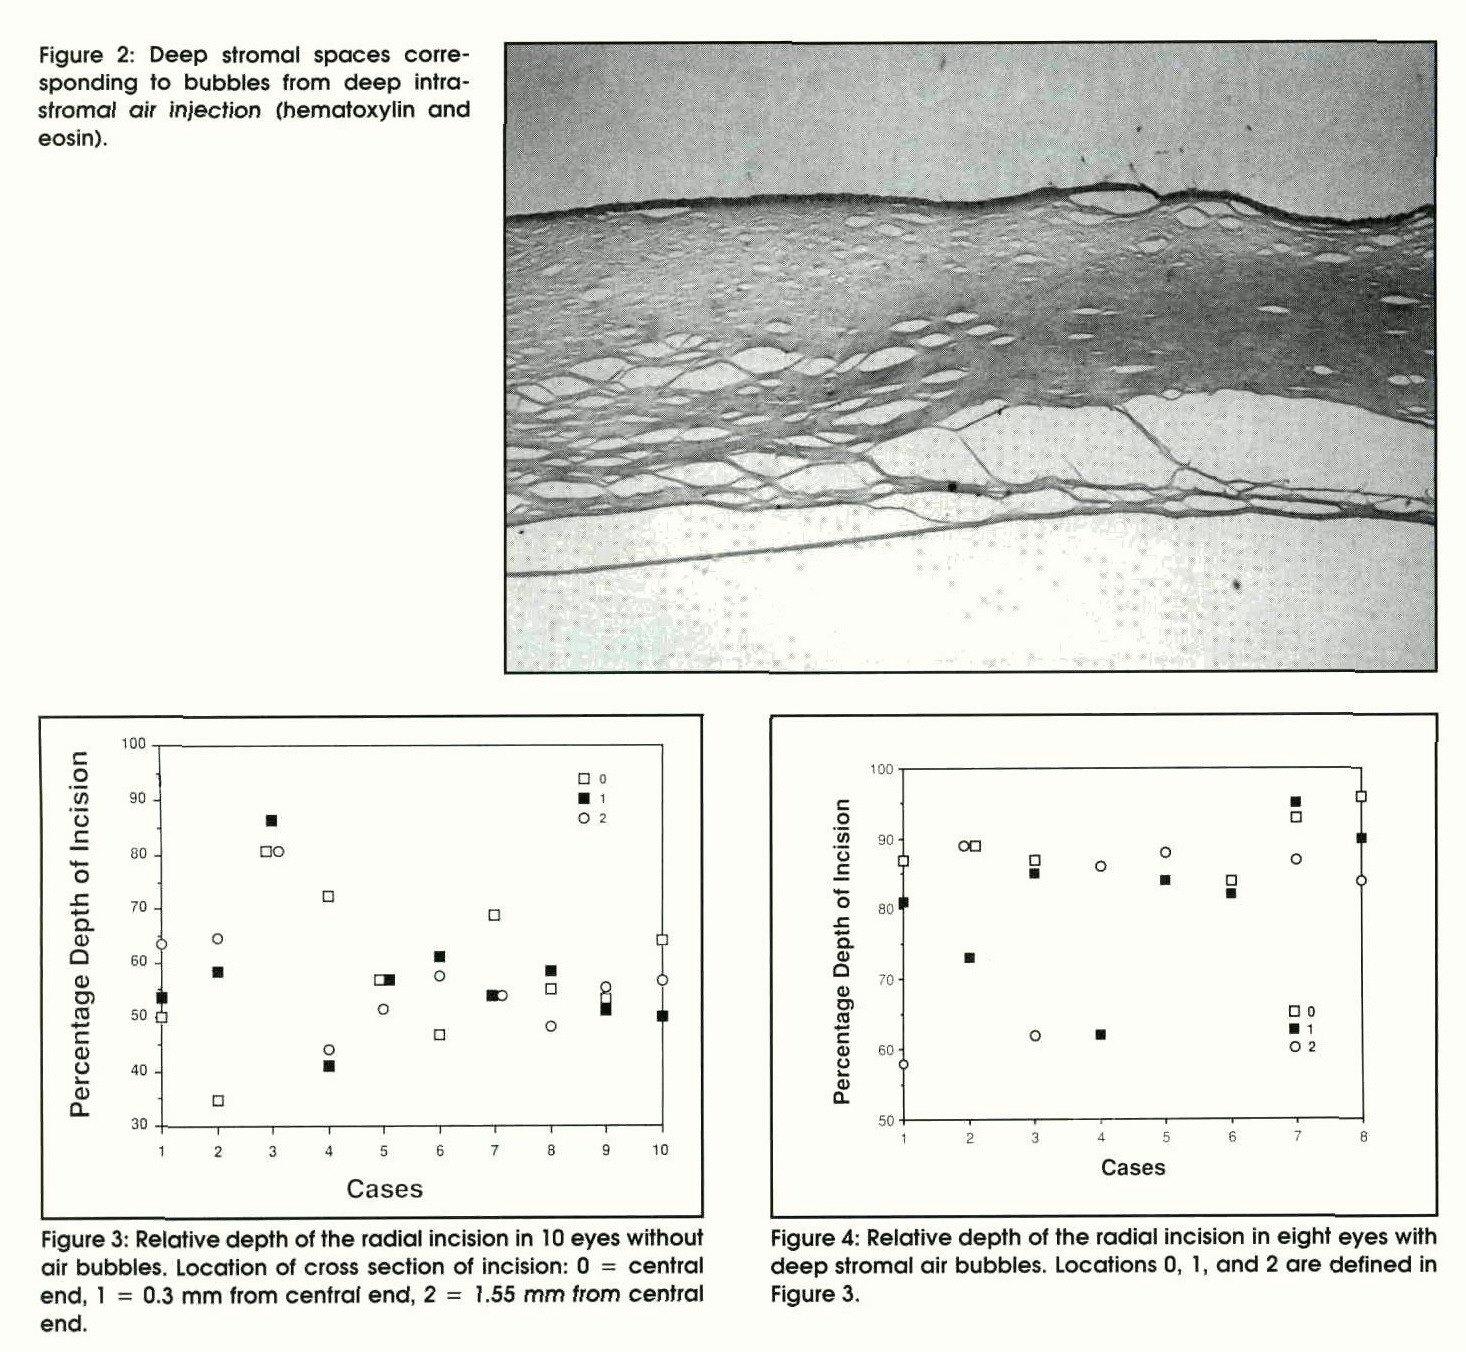 Figure 2: Deep stromal spaces corresponding to bubbles from deep intrastromal air injection (hematoxylin and eosin).Figure 3: Relative depth of the radial incision in 10 eyes without air bubbles. Location of cross section of incision: 0 = central end, 1 = 0.3 mm from centrai end, 2 = 1.55 mm from central end.Figure 4: Relative depth of the radial incision in eight eyes with deep stromal air bubbles. Locations 0, 1 , and 2 are defined in Figure 3.